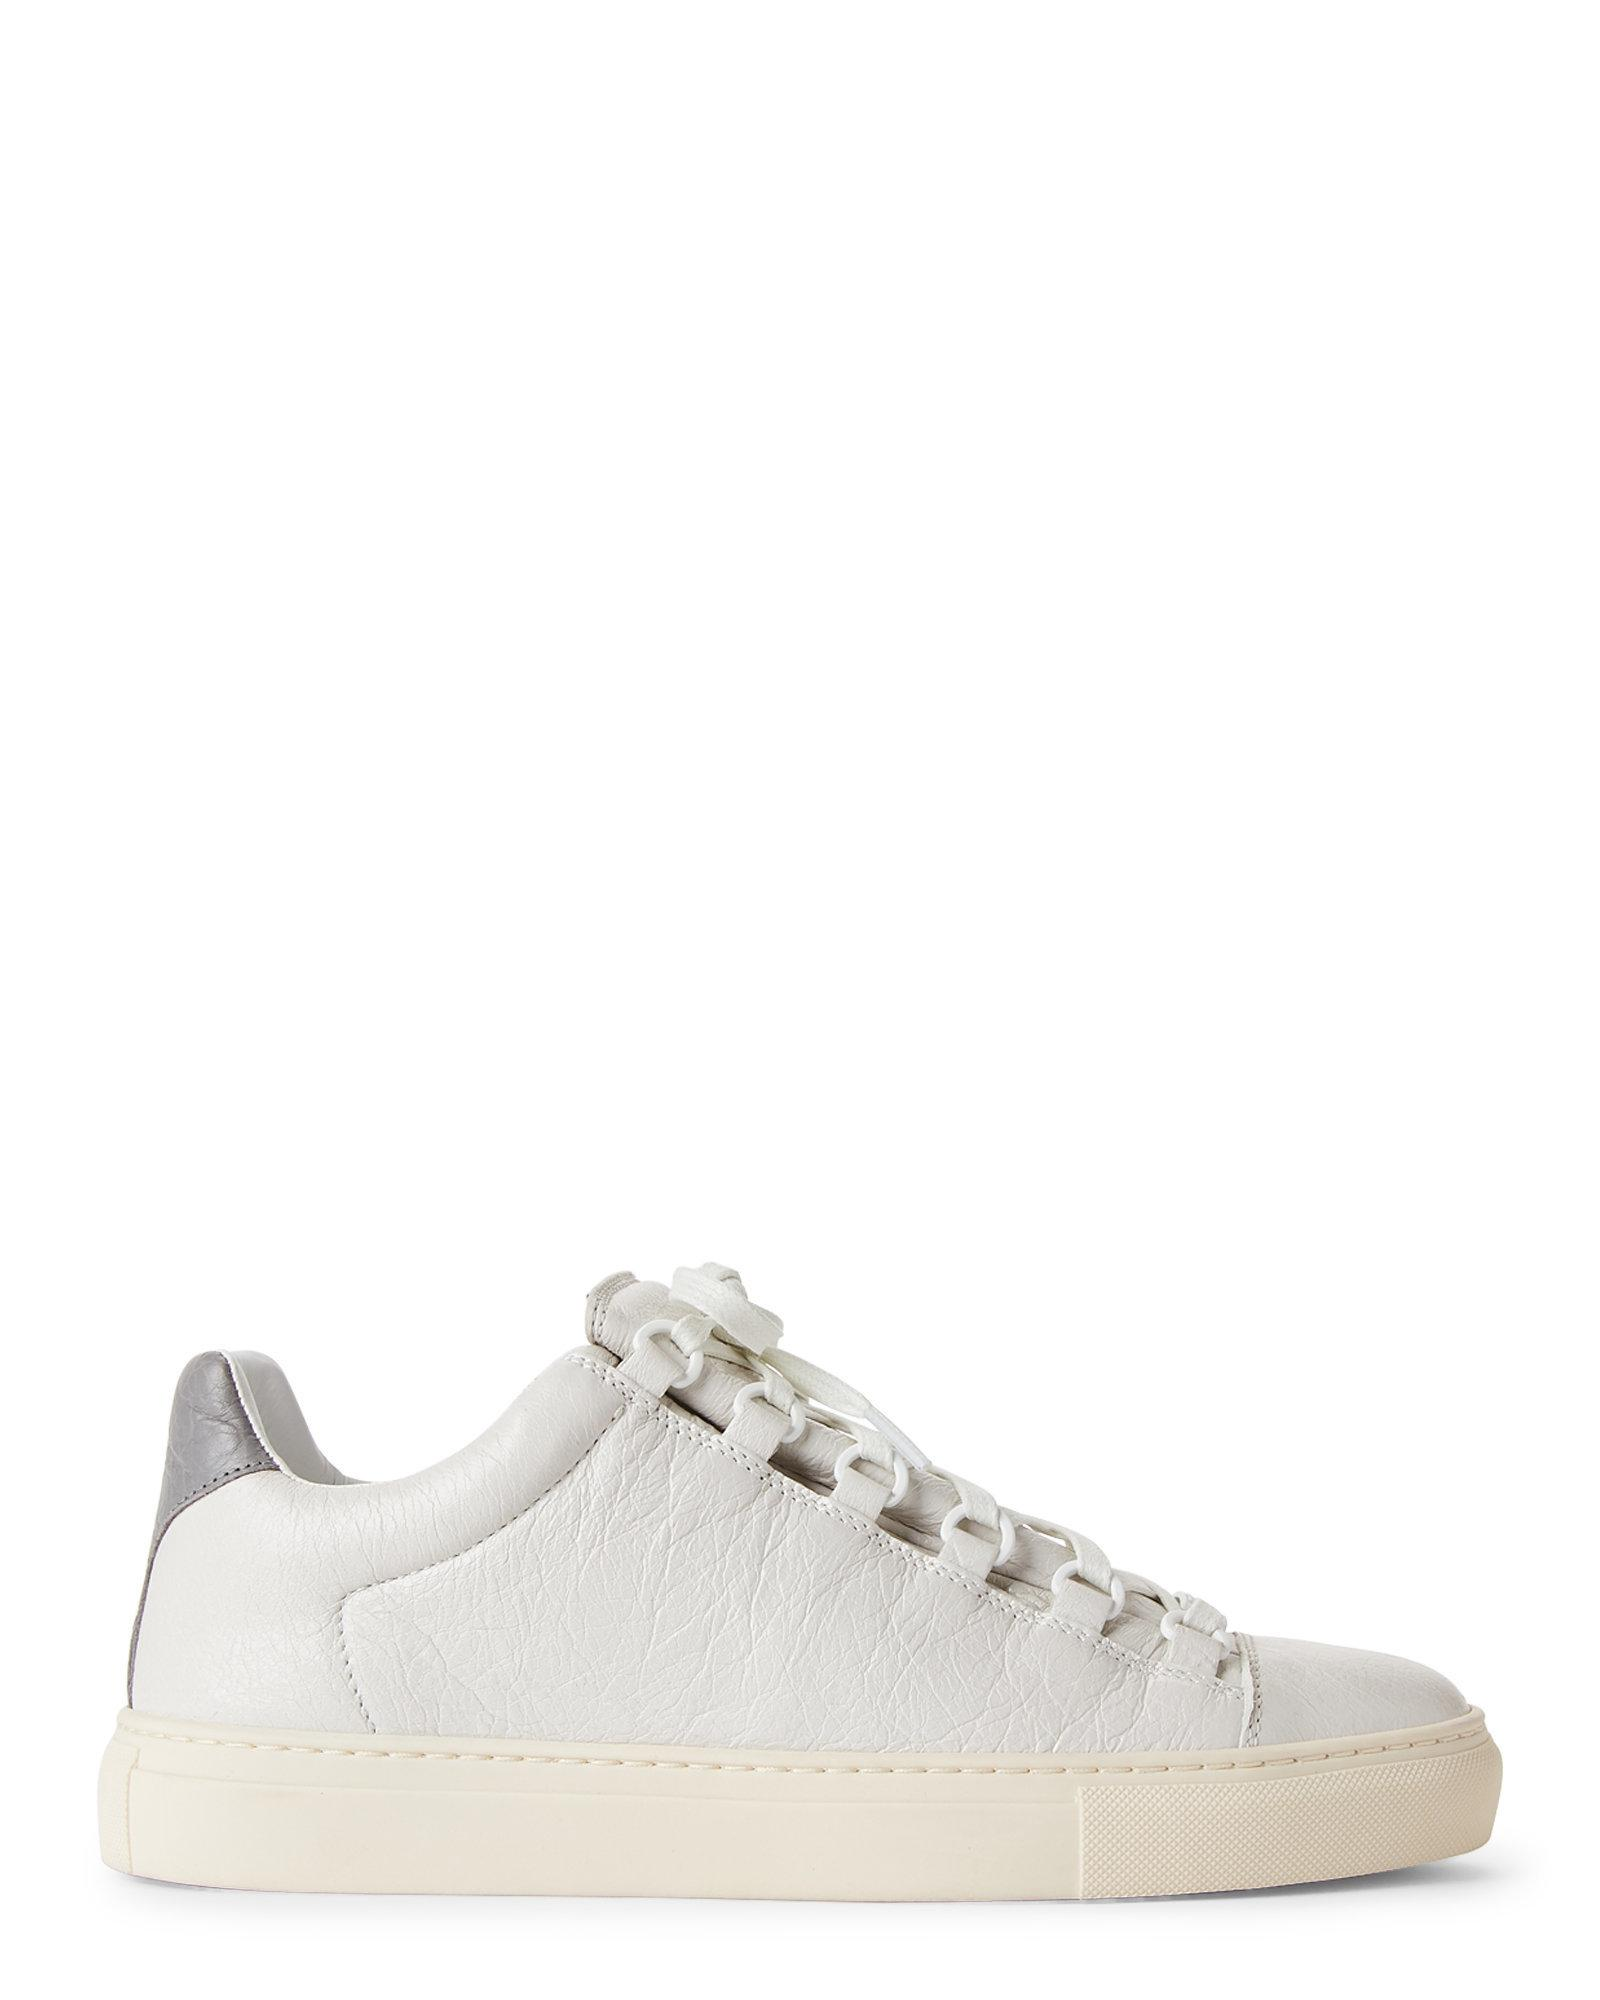 52f96b67a695 Lyst - Balenciaga Off-white   Grey Arena Bicolor Low-top Sneakers in ...